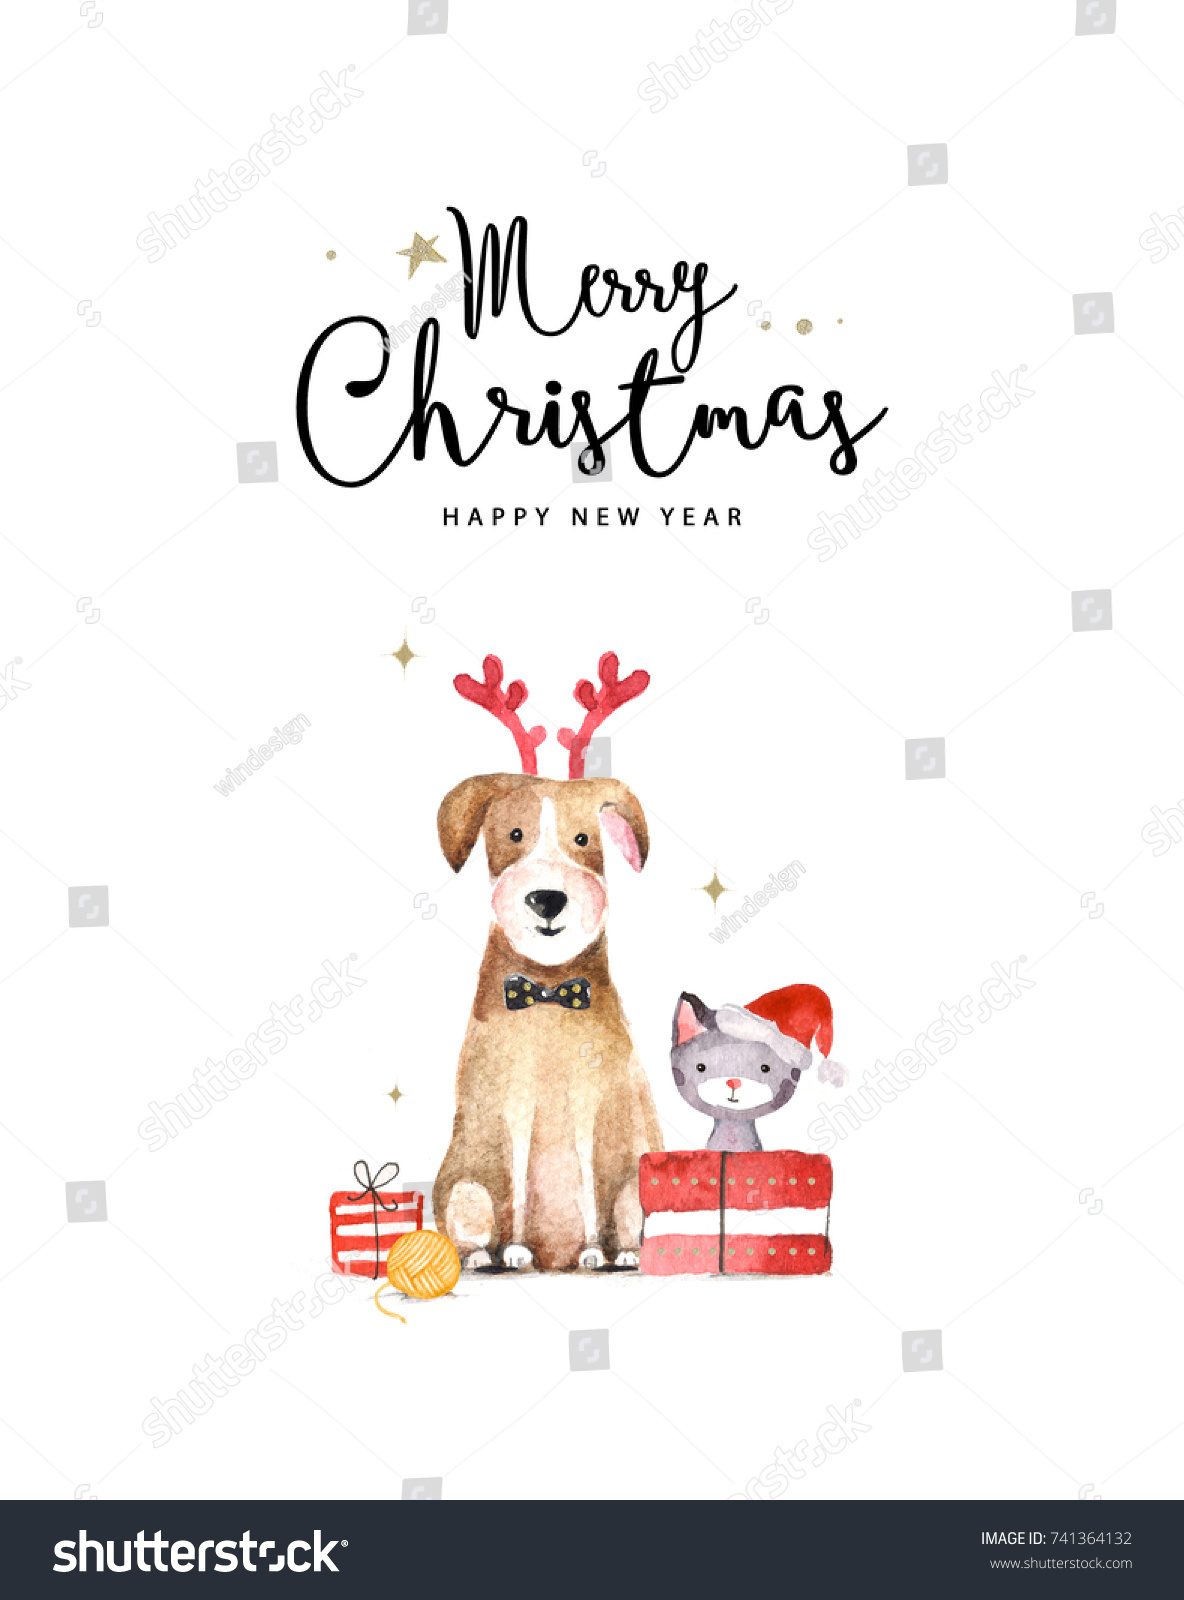 merry christmas and happy new year card watercolor illustration of dog and cat